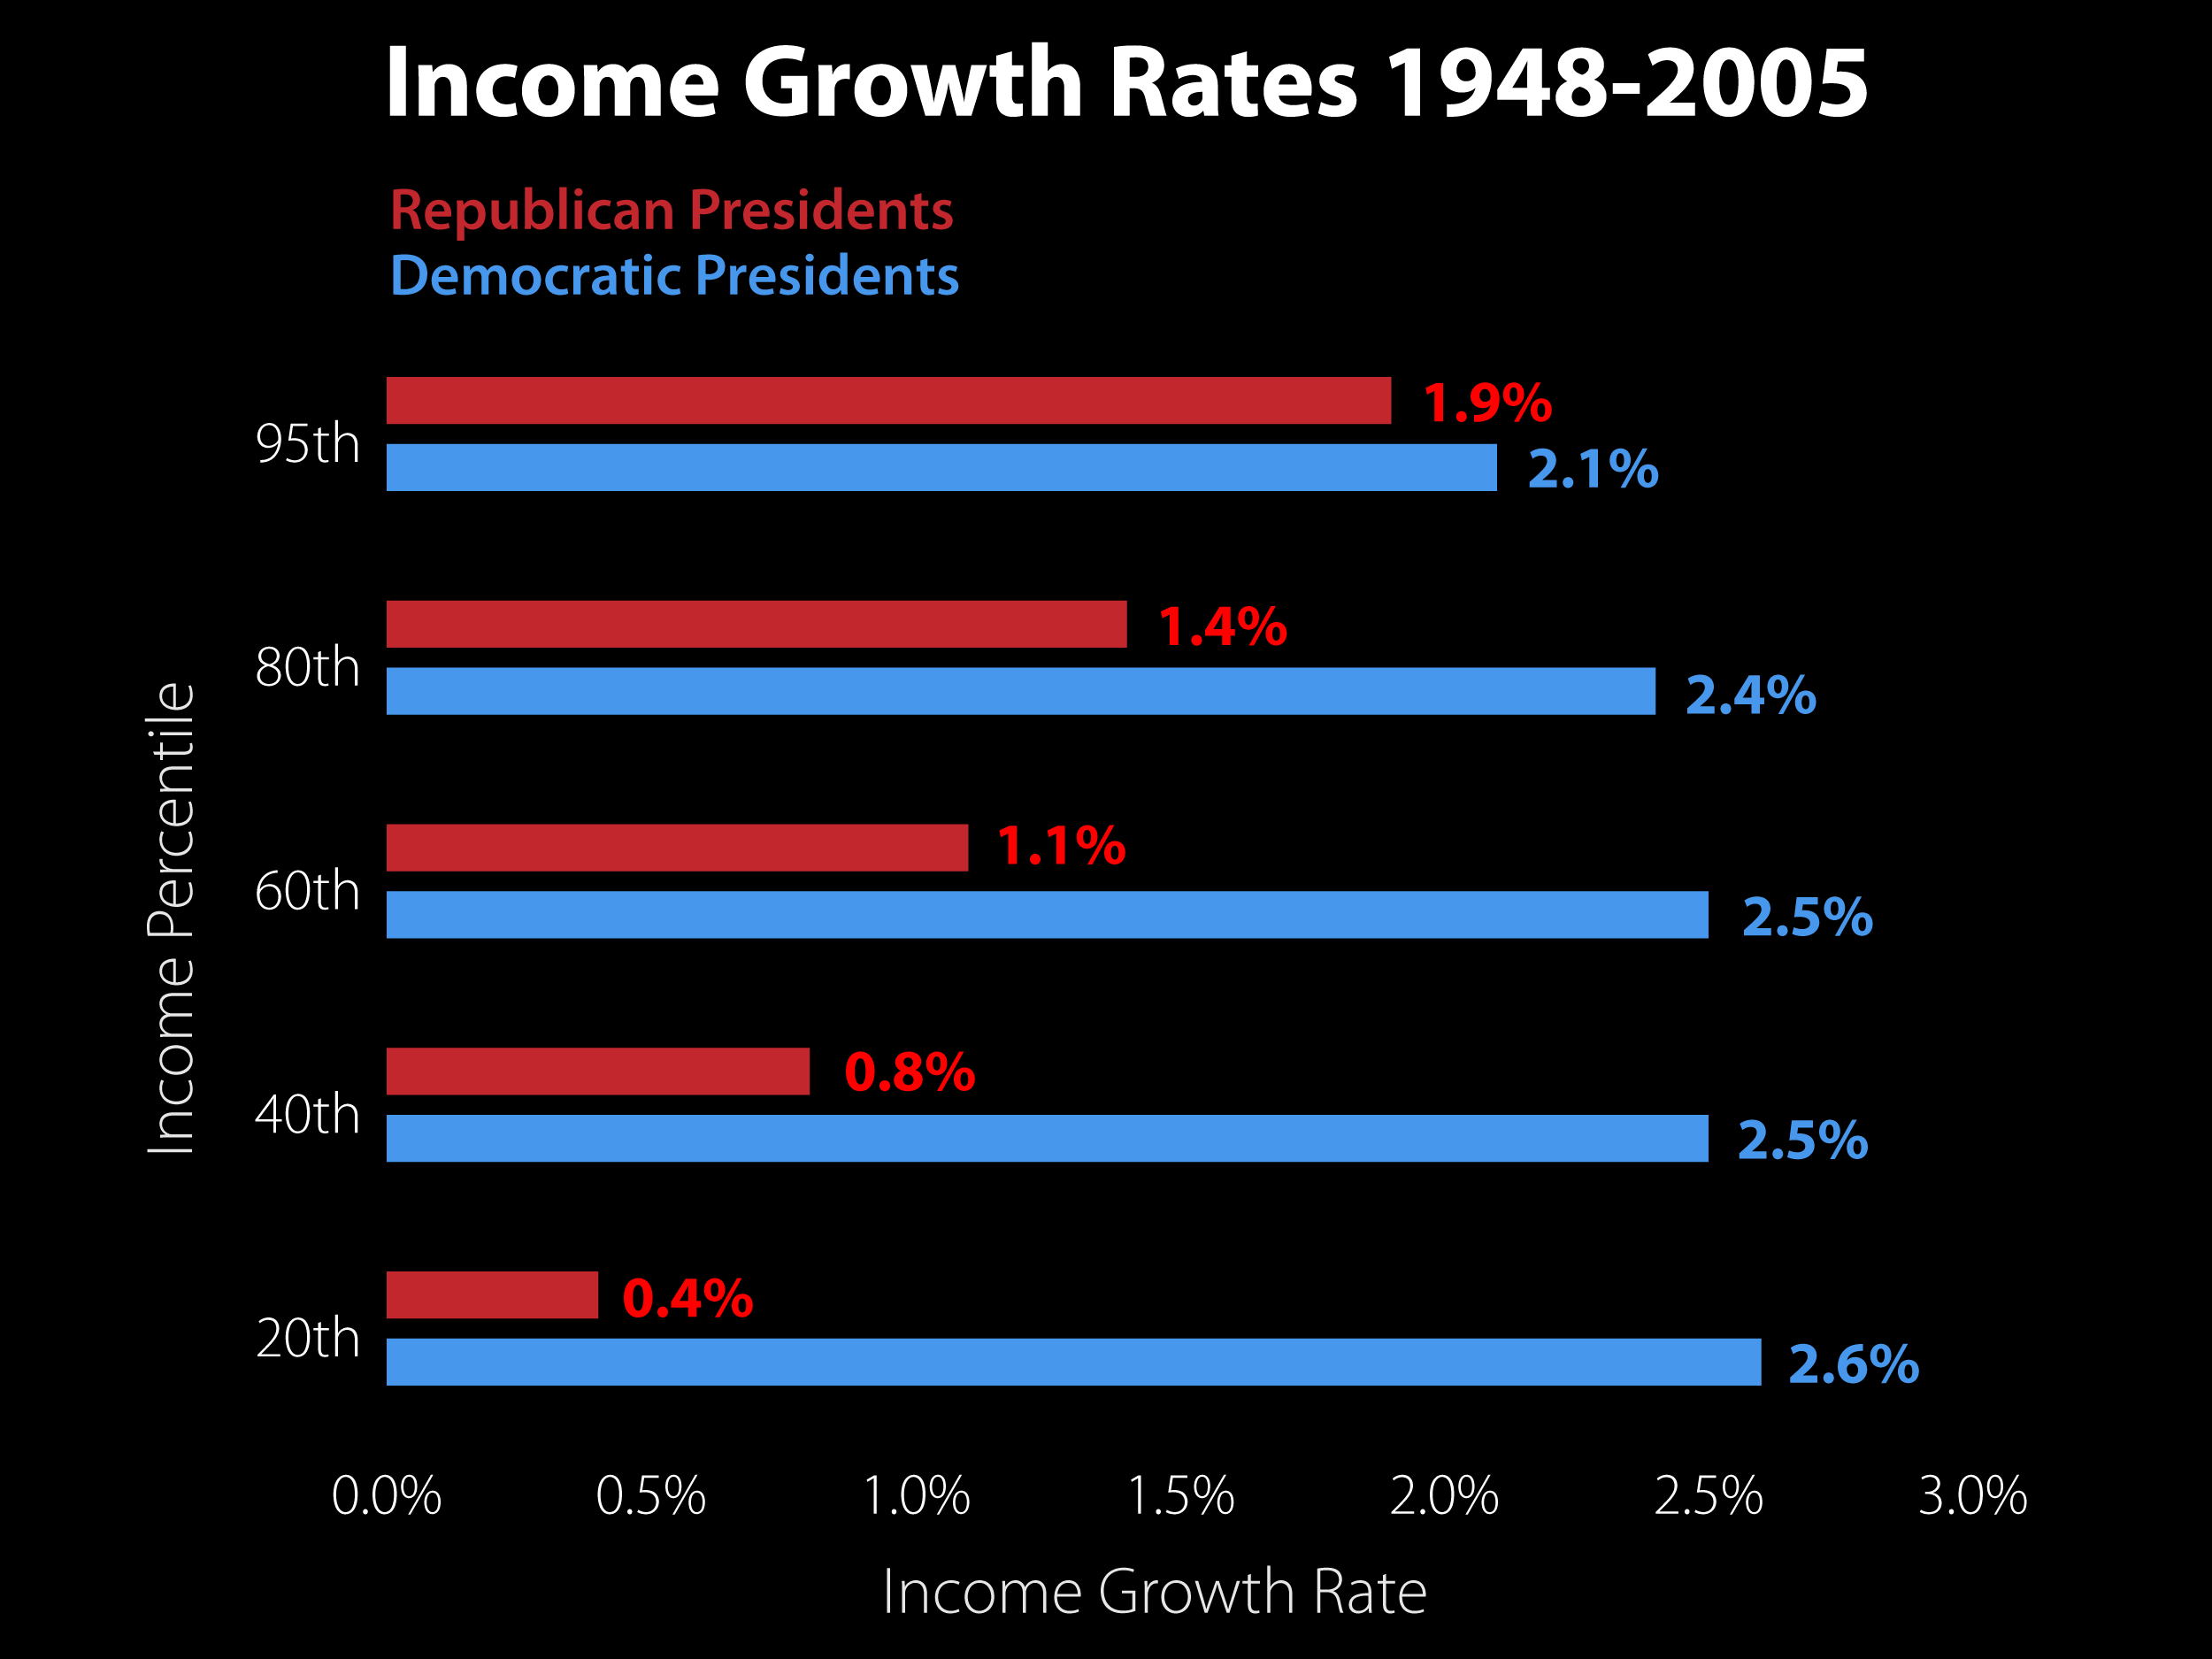 income-growth-rates-1948-2005